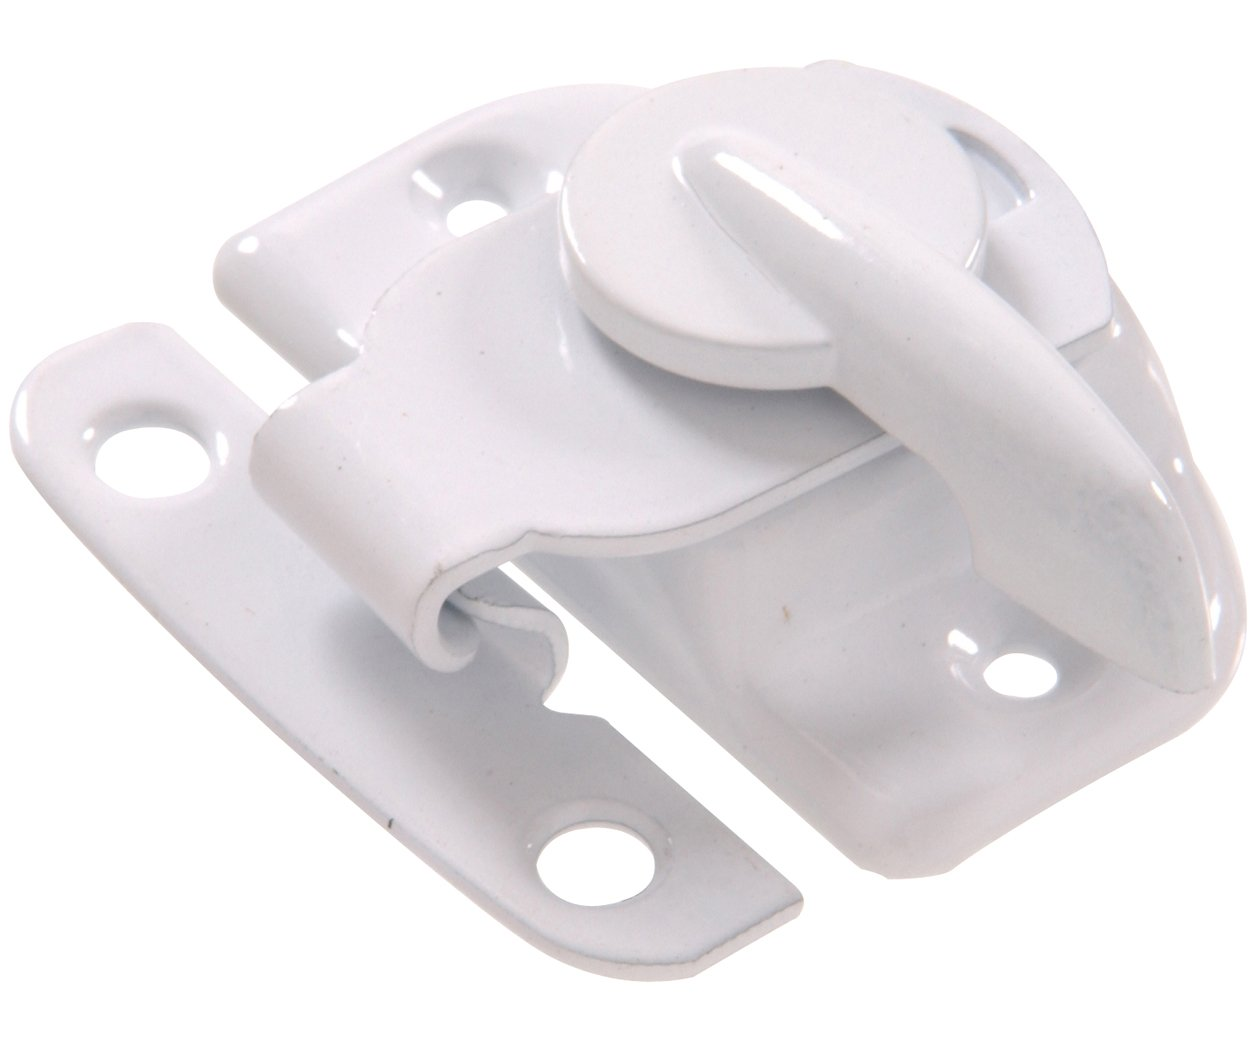 The Hillman Group The Hillman Group 851835 Sash Lock- Cam Type - White 1-Pack